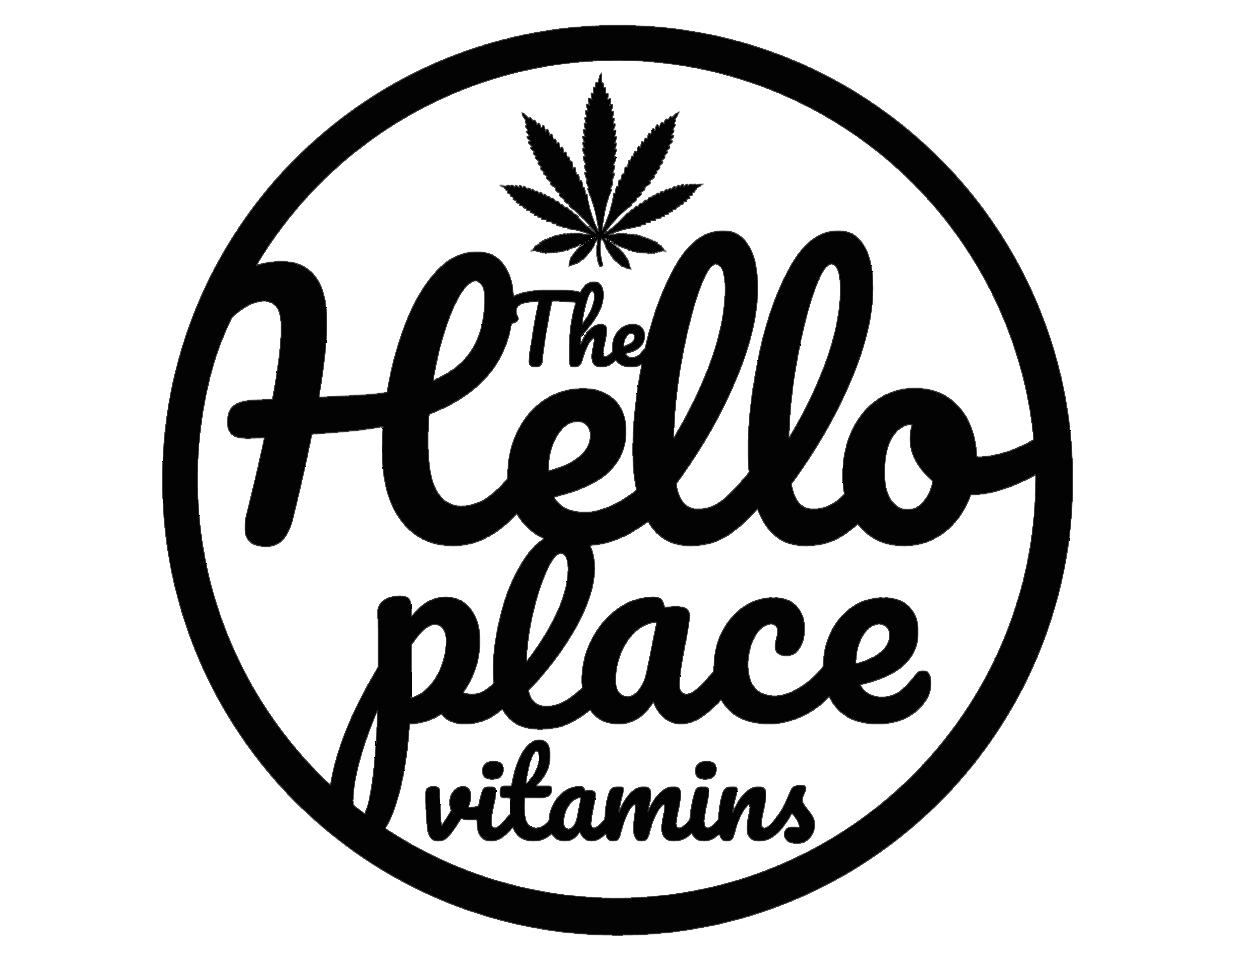 The Hello Place